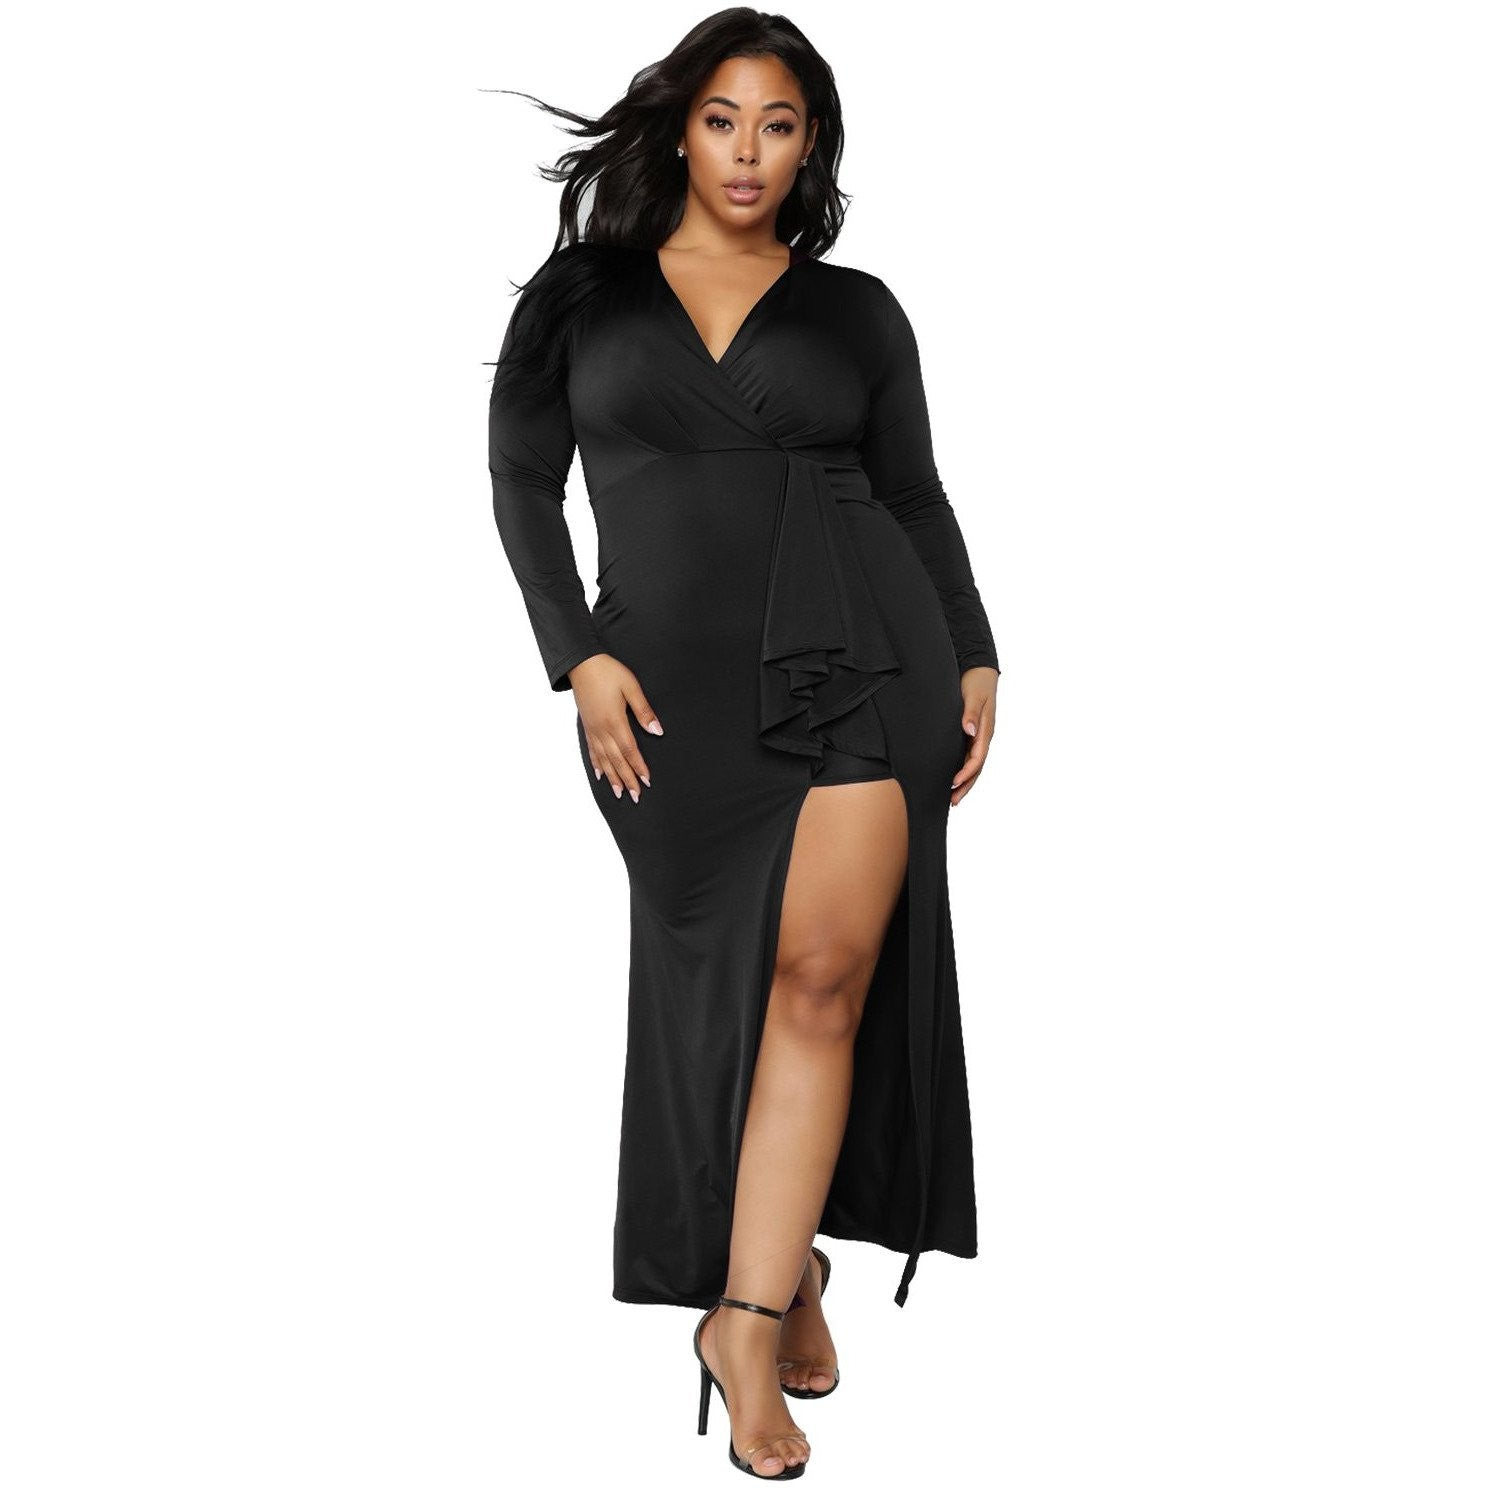 KELLIPS Black Sexy Plus Size Maxi Dress - KELLIPS